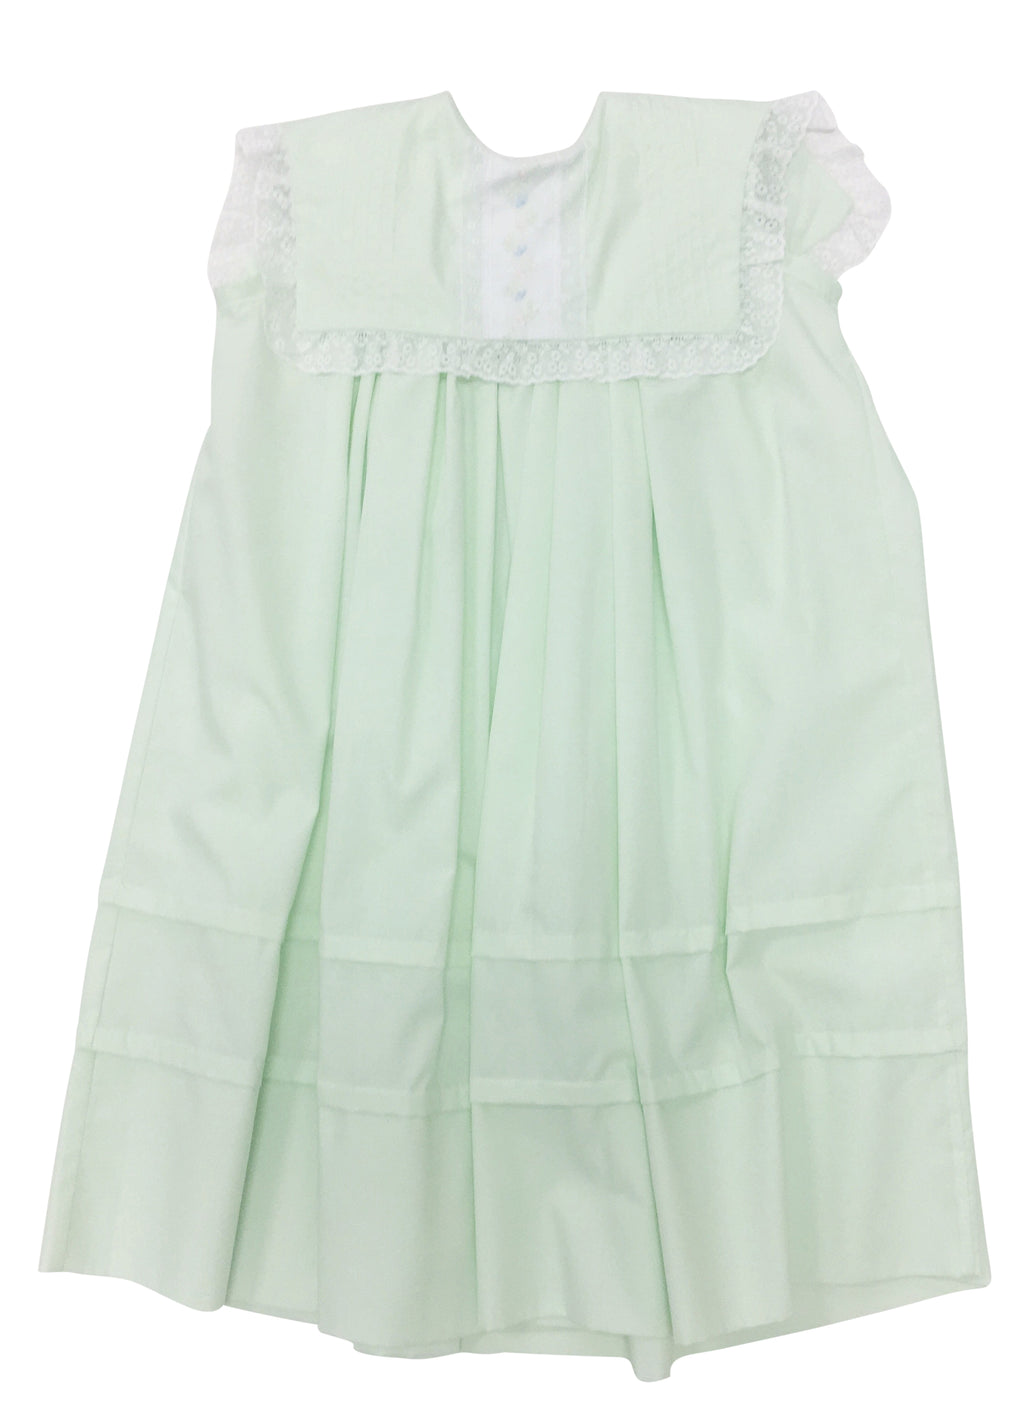 Heirloom Sleeveless Dress Mint with White Insertion - Born Childrens Boutique